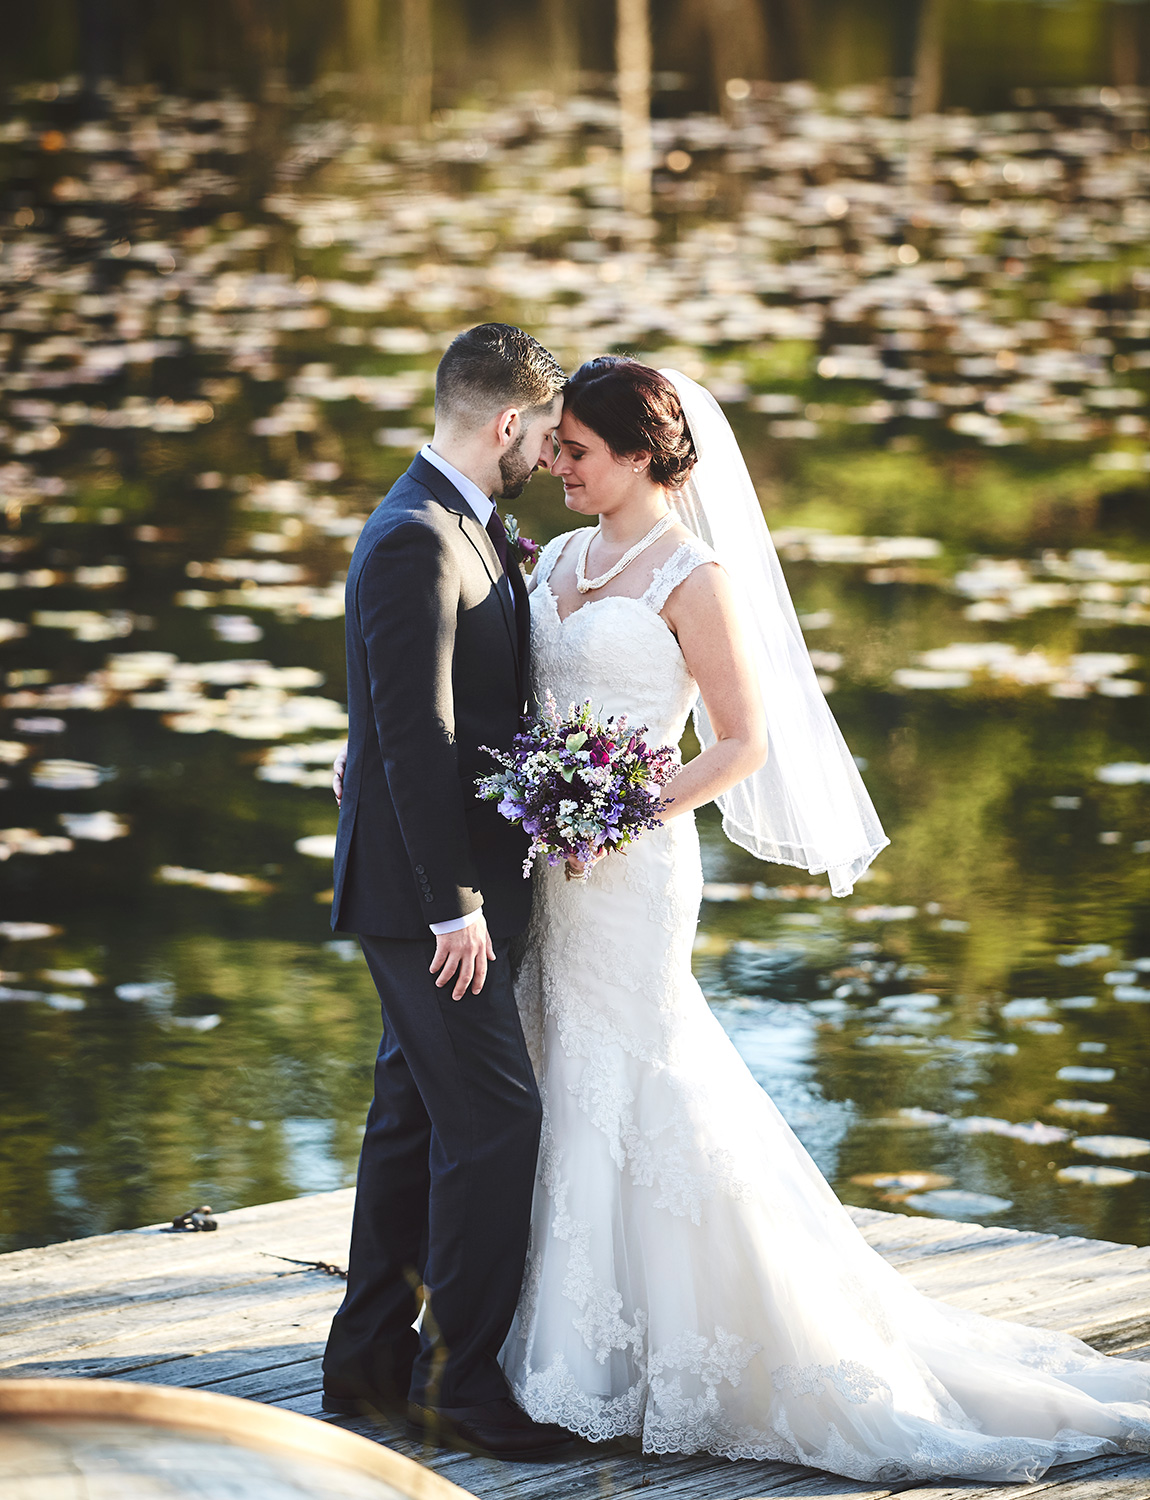 161119_ArrowParkLake&LodgeWedding_By_BriJohnsonWeddings_0091.jpg